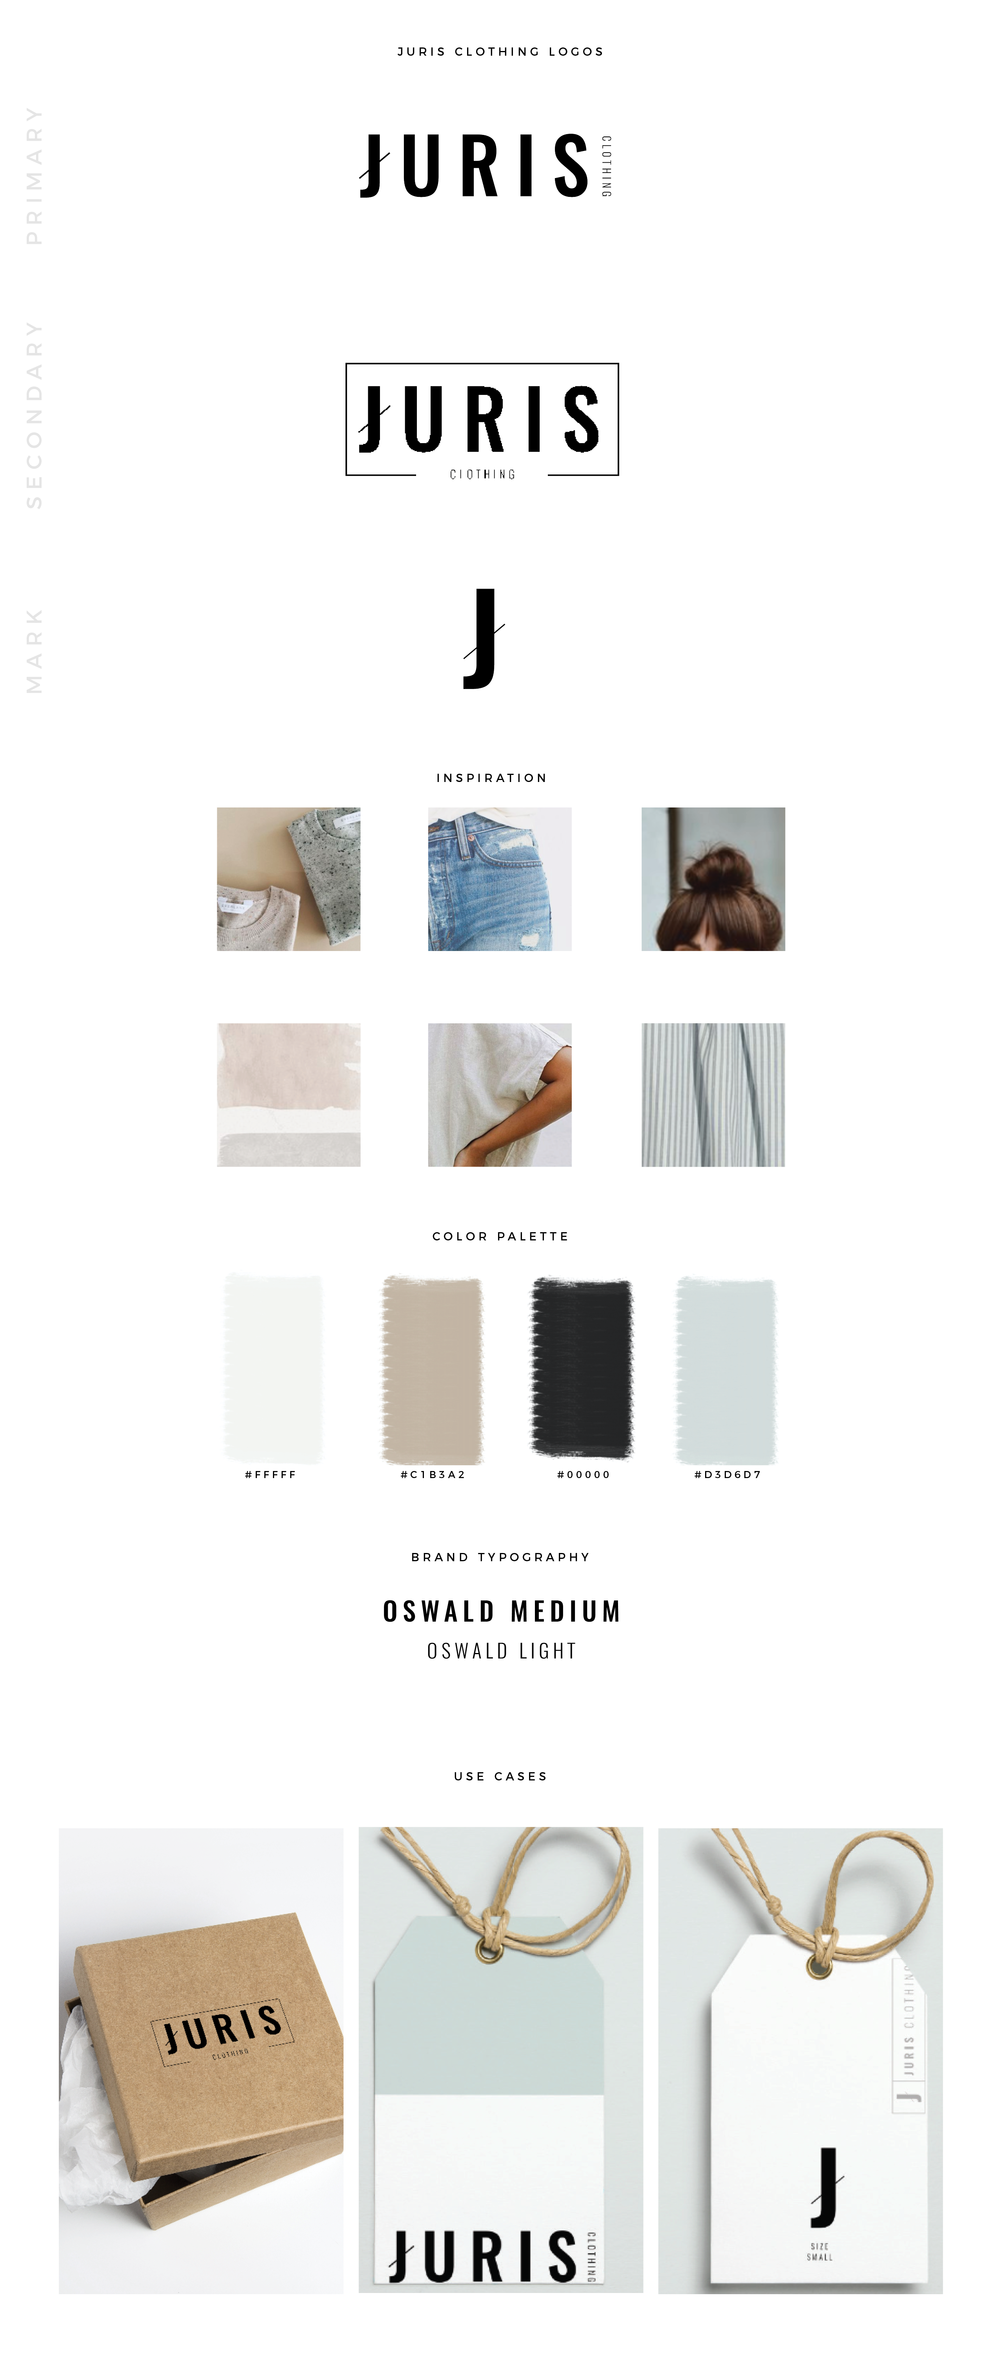 Lindsay Scholz | St. Louis-based Brand and social media design for brands, bloggers and creatives